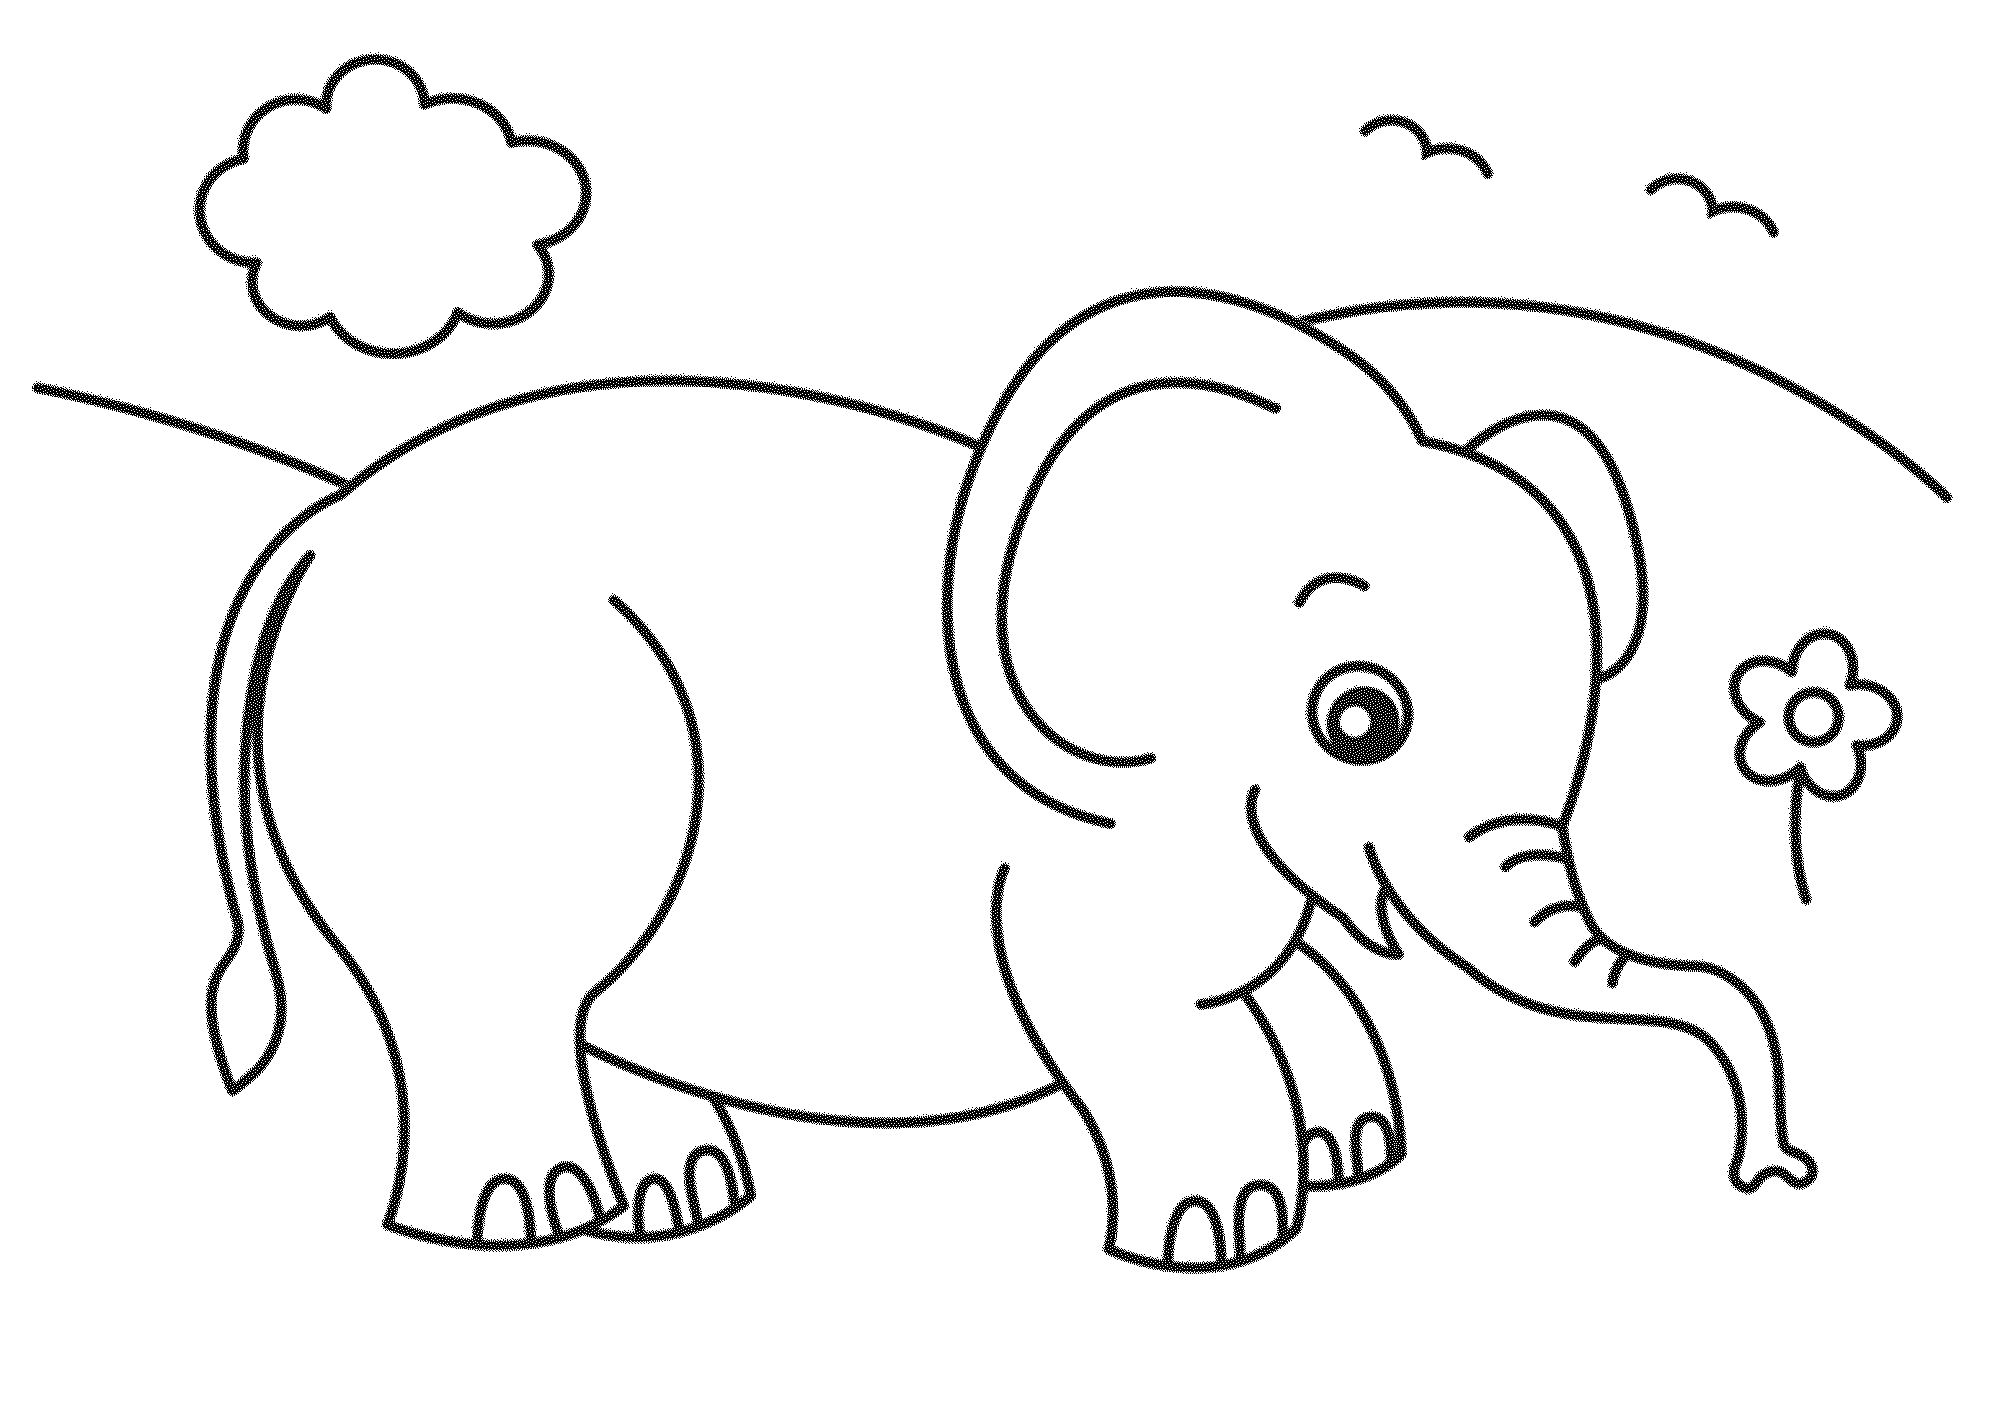 Cute Baby Elephant Coloring Pages Easy Elephant Coloring Pages Ideas For Beginners Elephant Coloring Page Elephant Drawing Coloring Pages